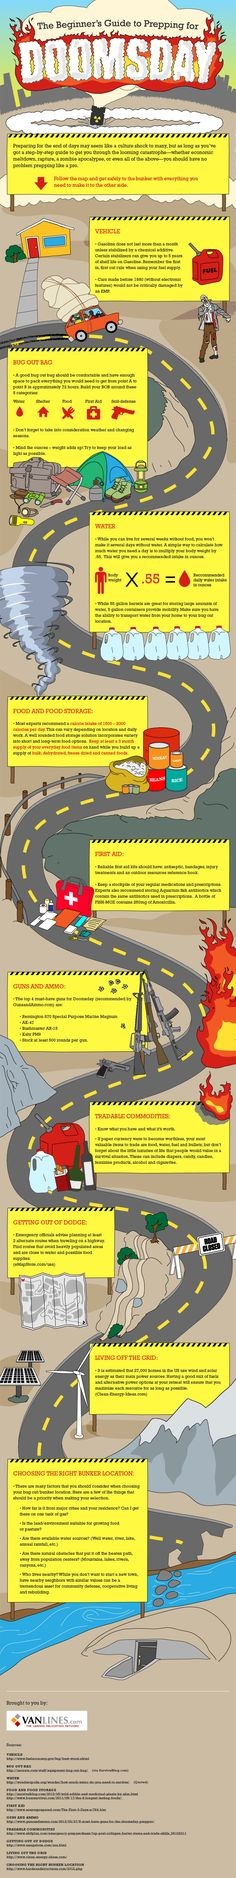 """I'm not into the """"doomsday"""" thing, but being prepared for an emergency or disaster is a good idea.  Here's a """"road map"""" to get down the basics."""